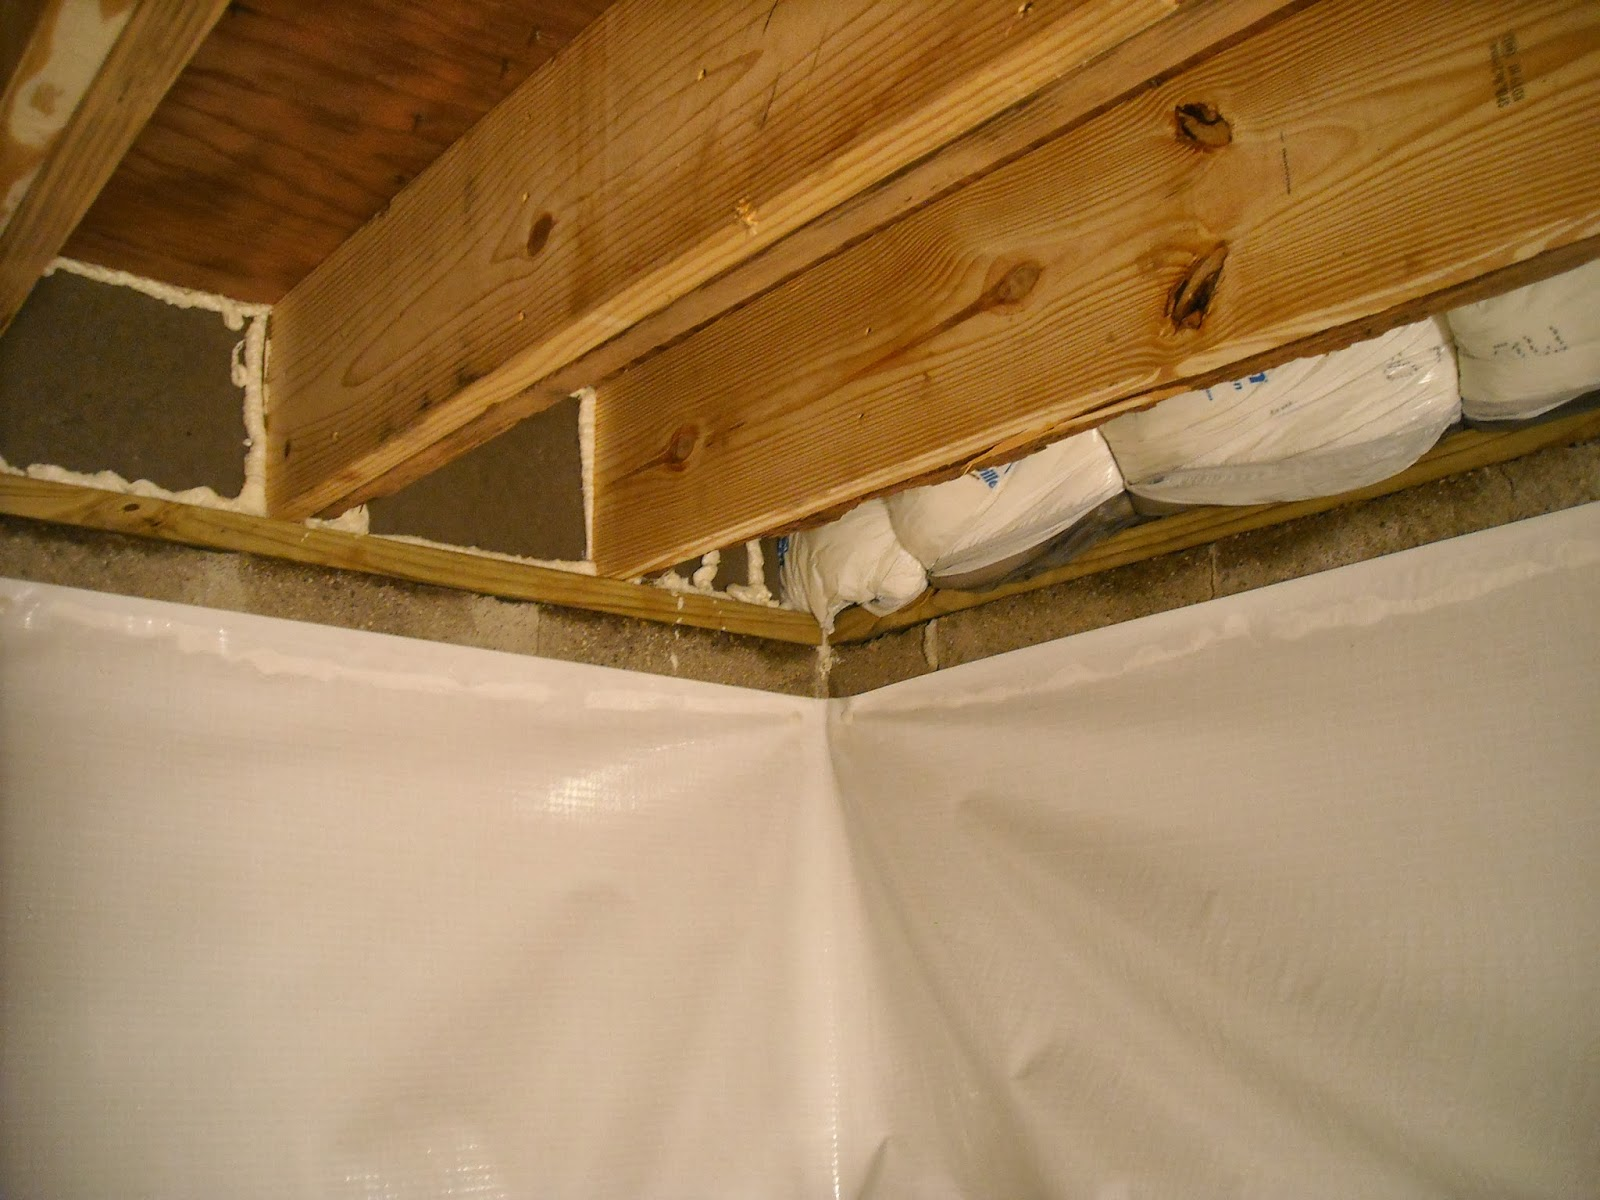 Best way to insulate a crawl space homesmsp best way to insulate a crawl space tyukafo